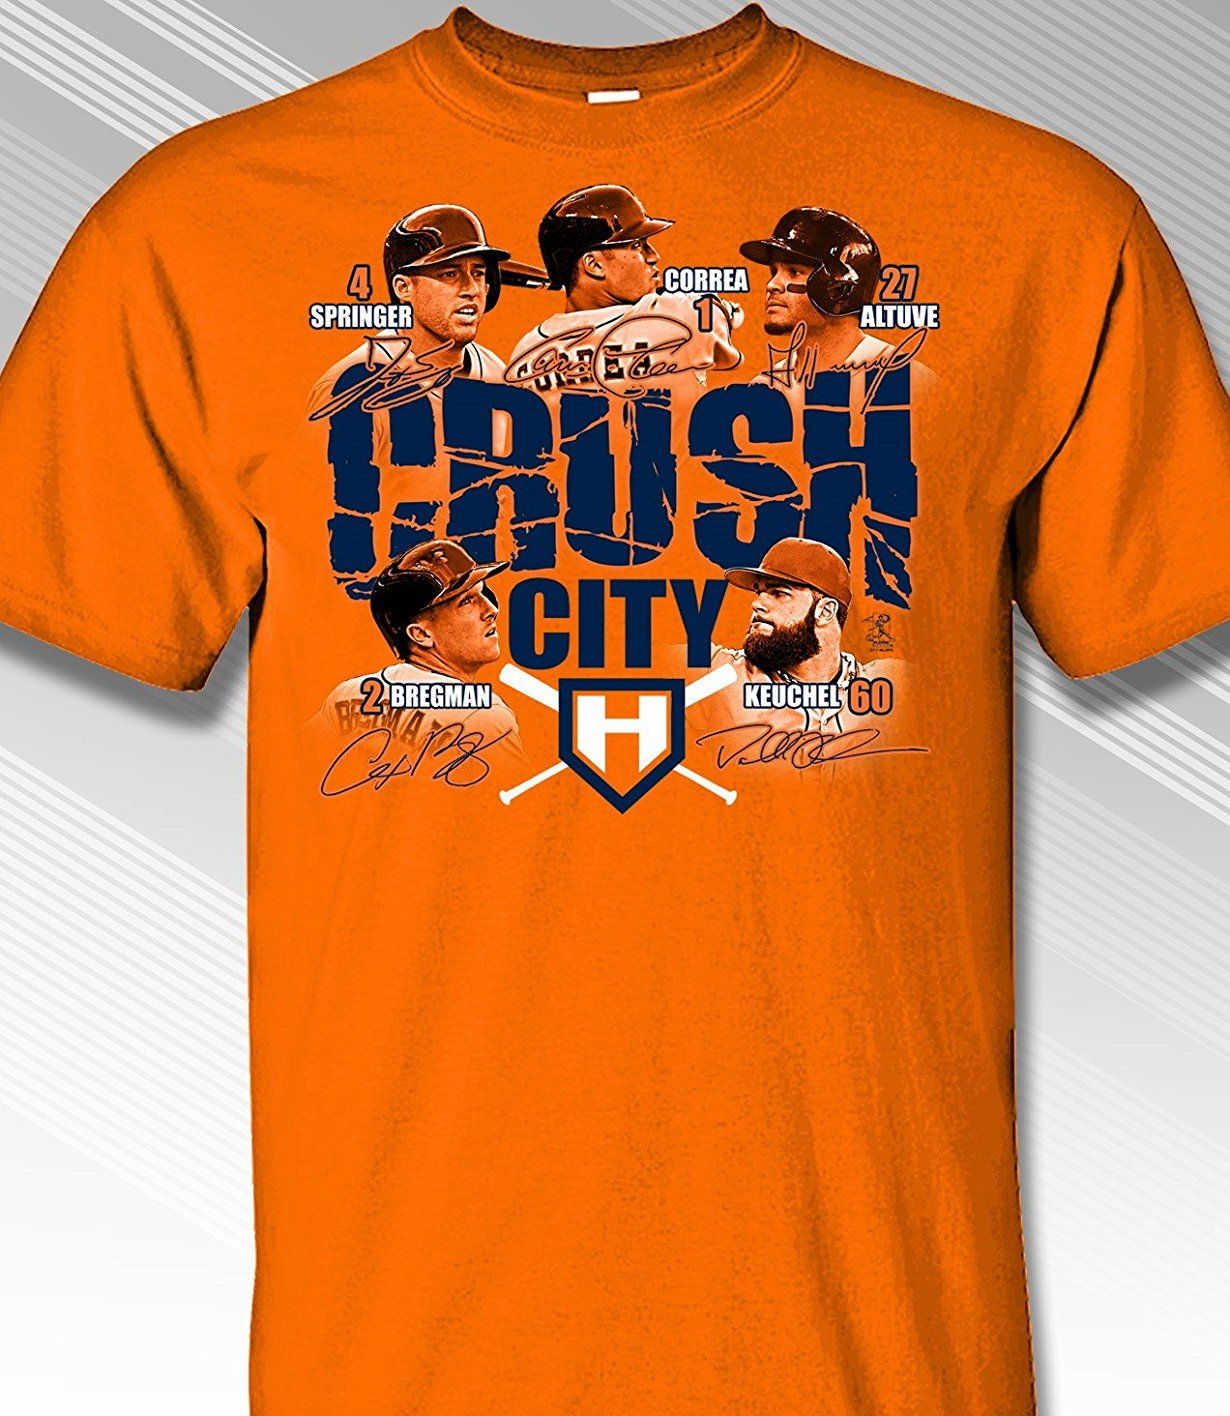 Houston Crush City T-Shirt<br>Short or Long Sleeve<br>Youth Med to Adult 4X